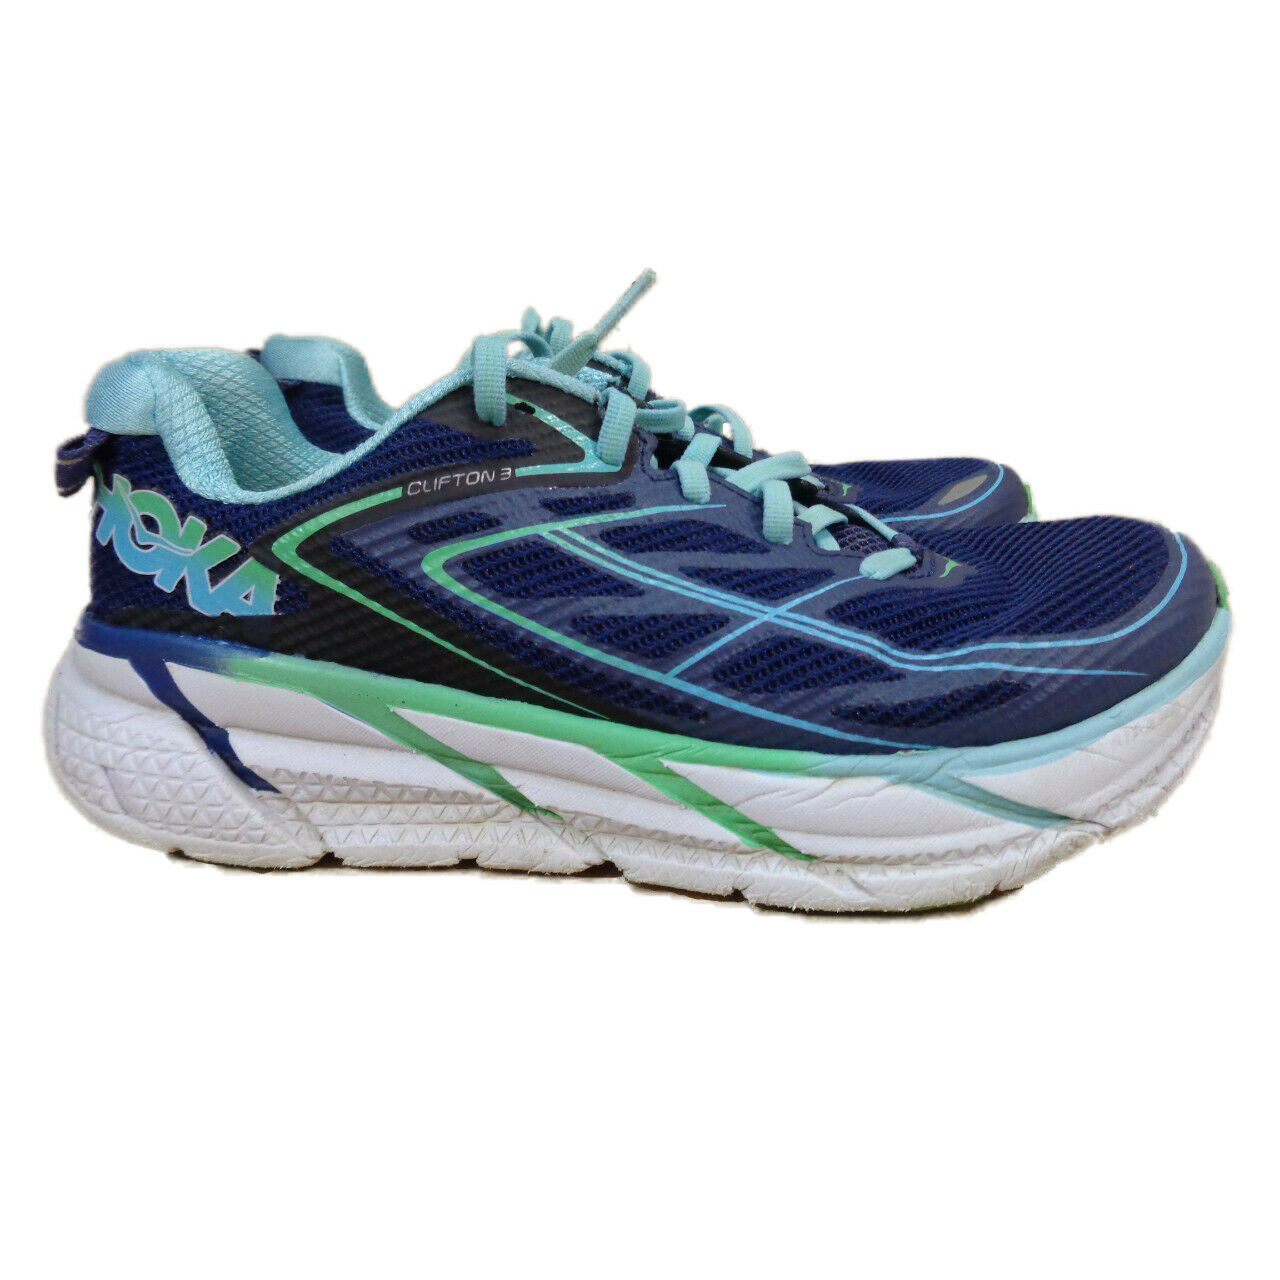 HOKA ONE ONE Clifton 3 Women's Road-Running shoes - US 6.5 (1012045)